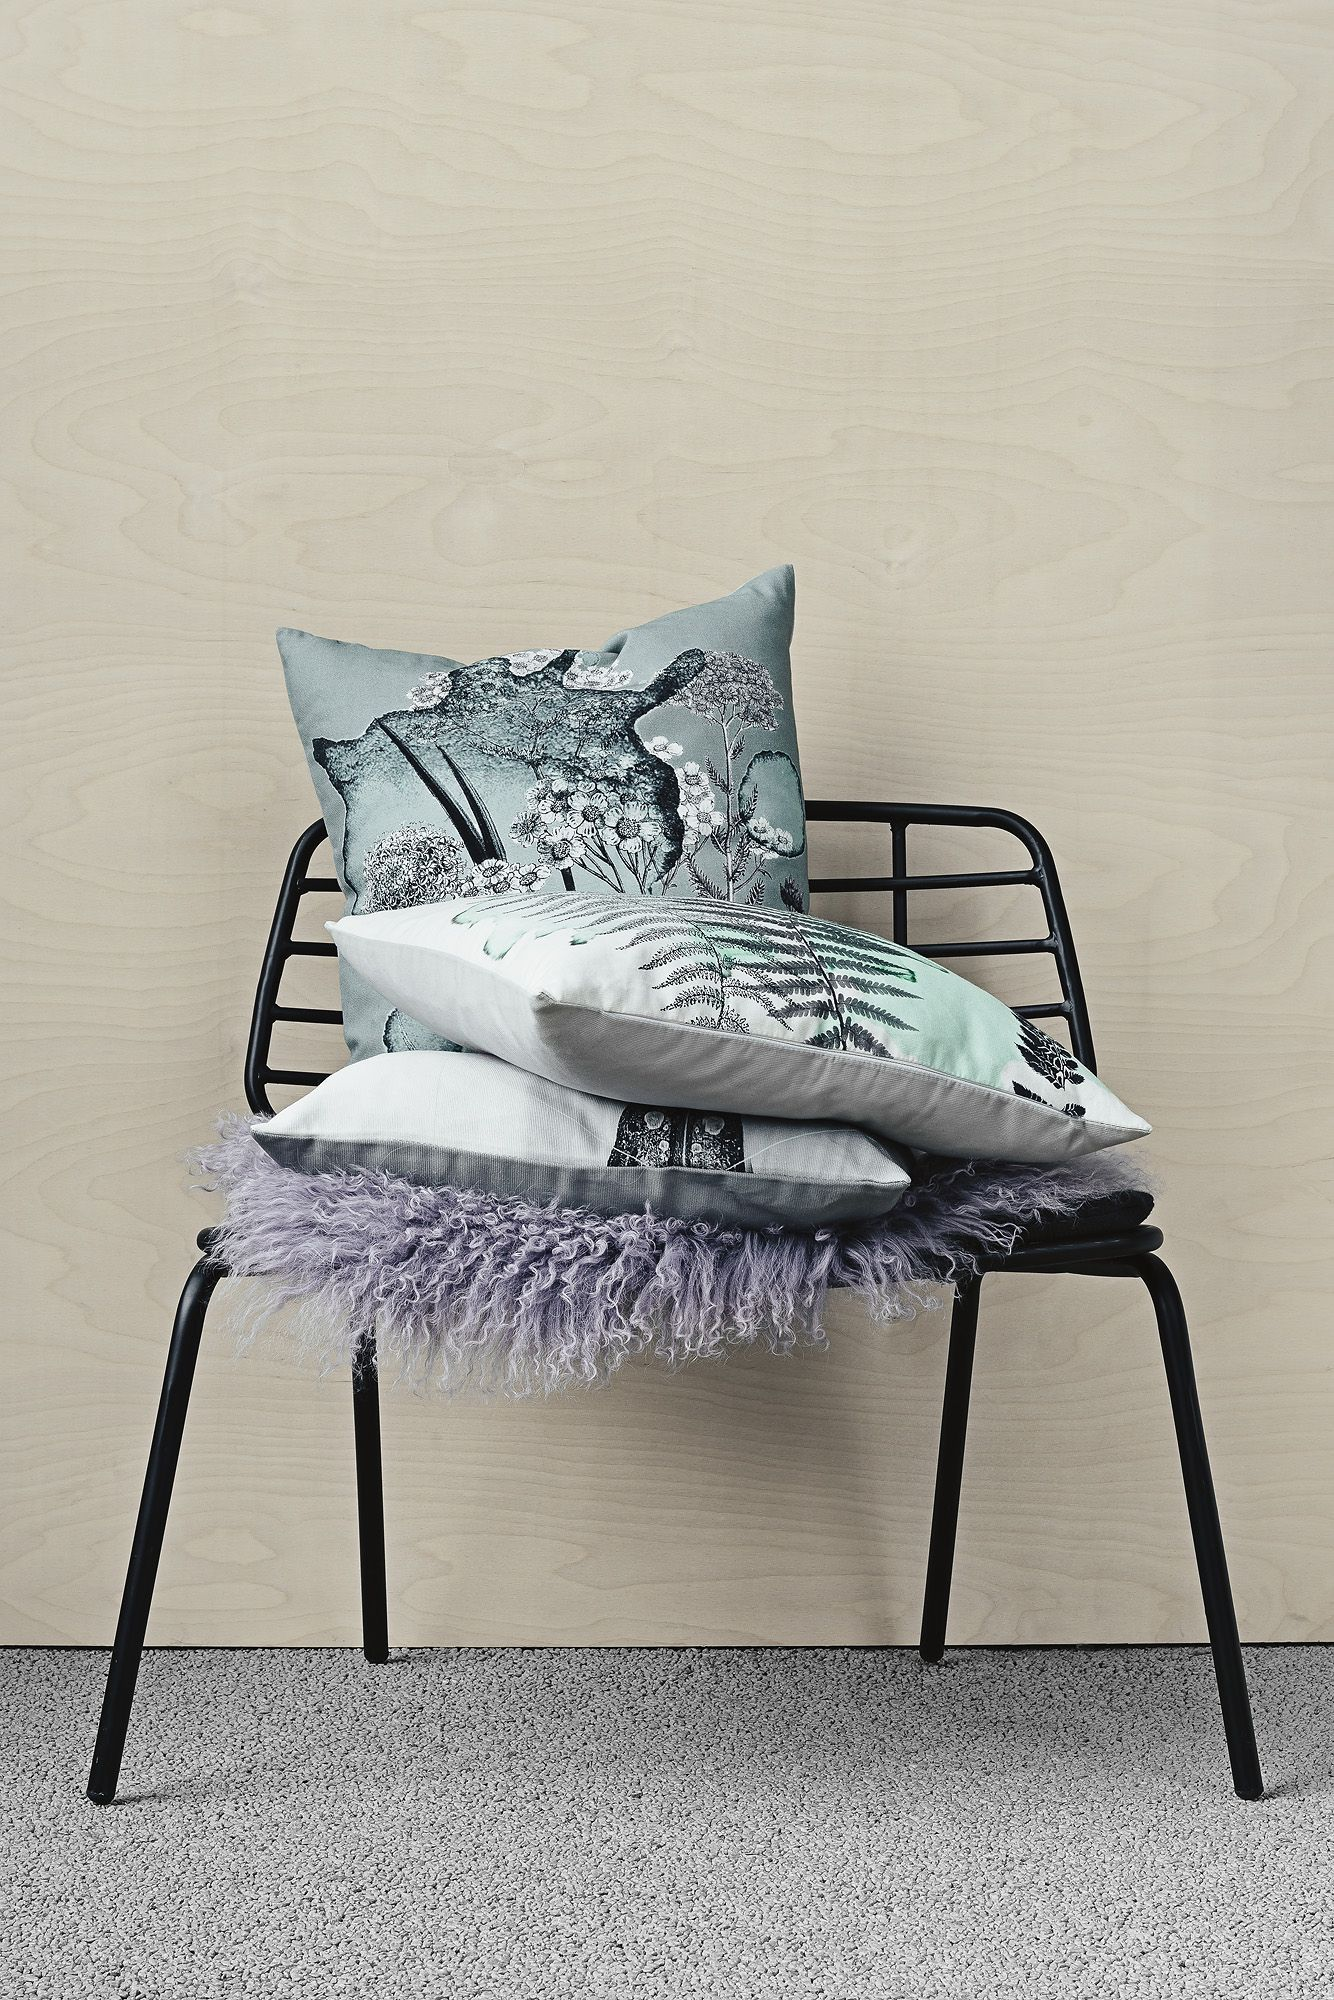 Beautiful Bloomingville Chair And Cushions With Botanical Prints.